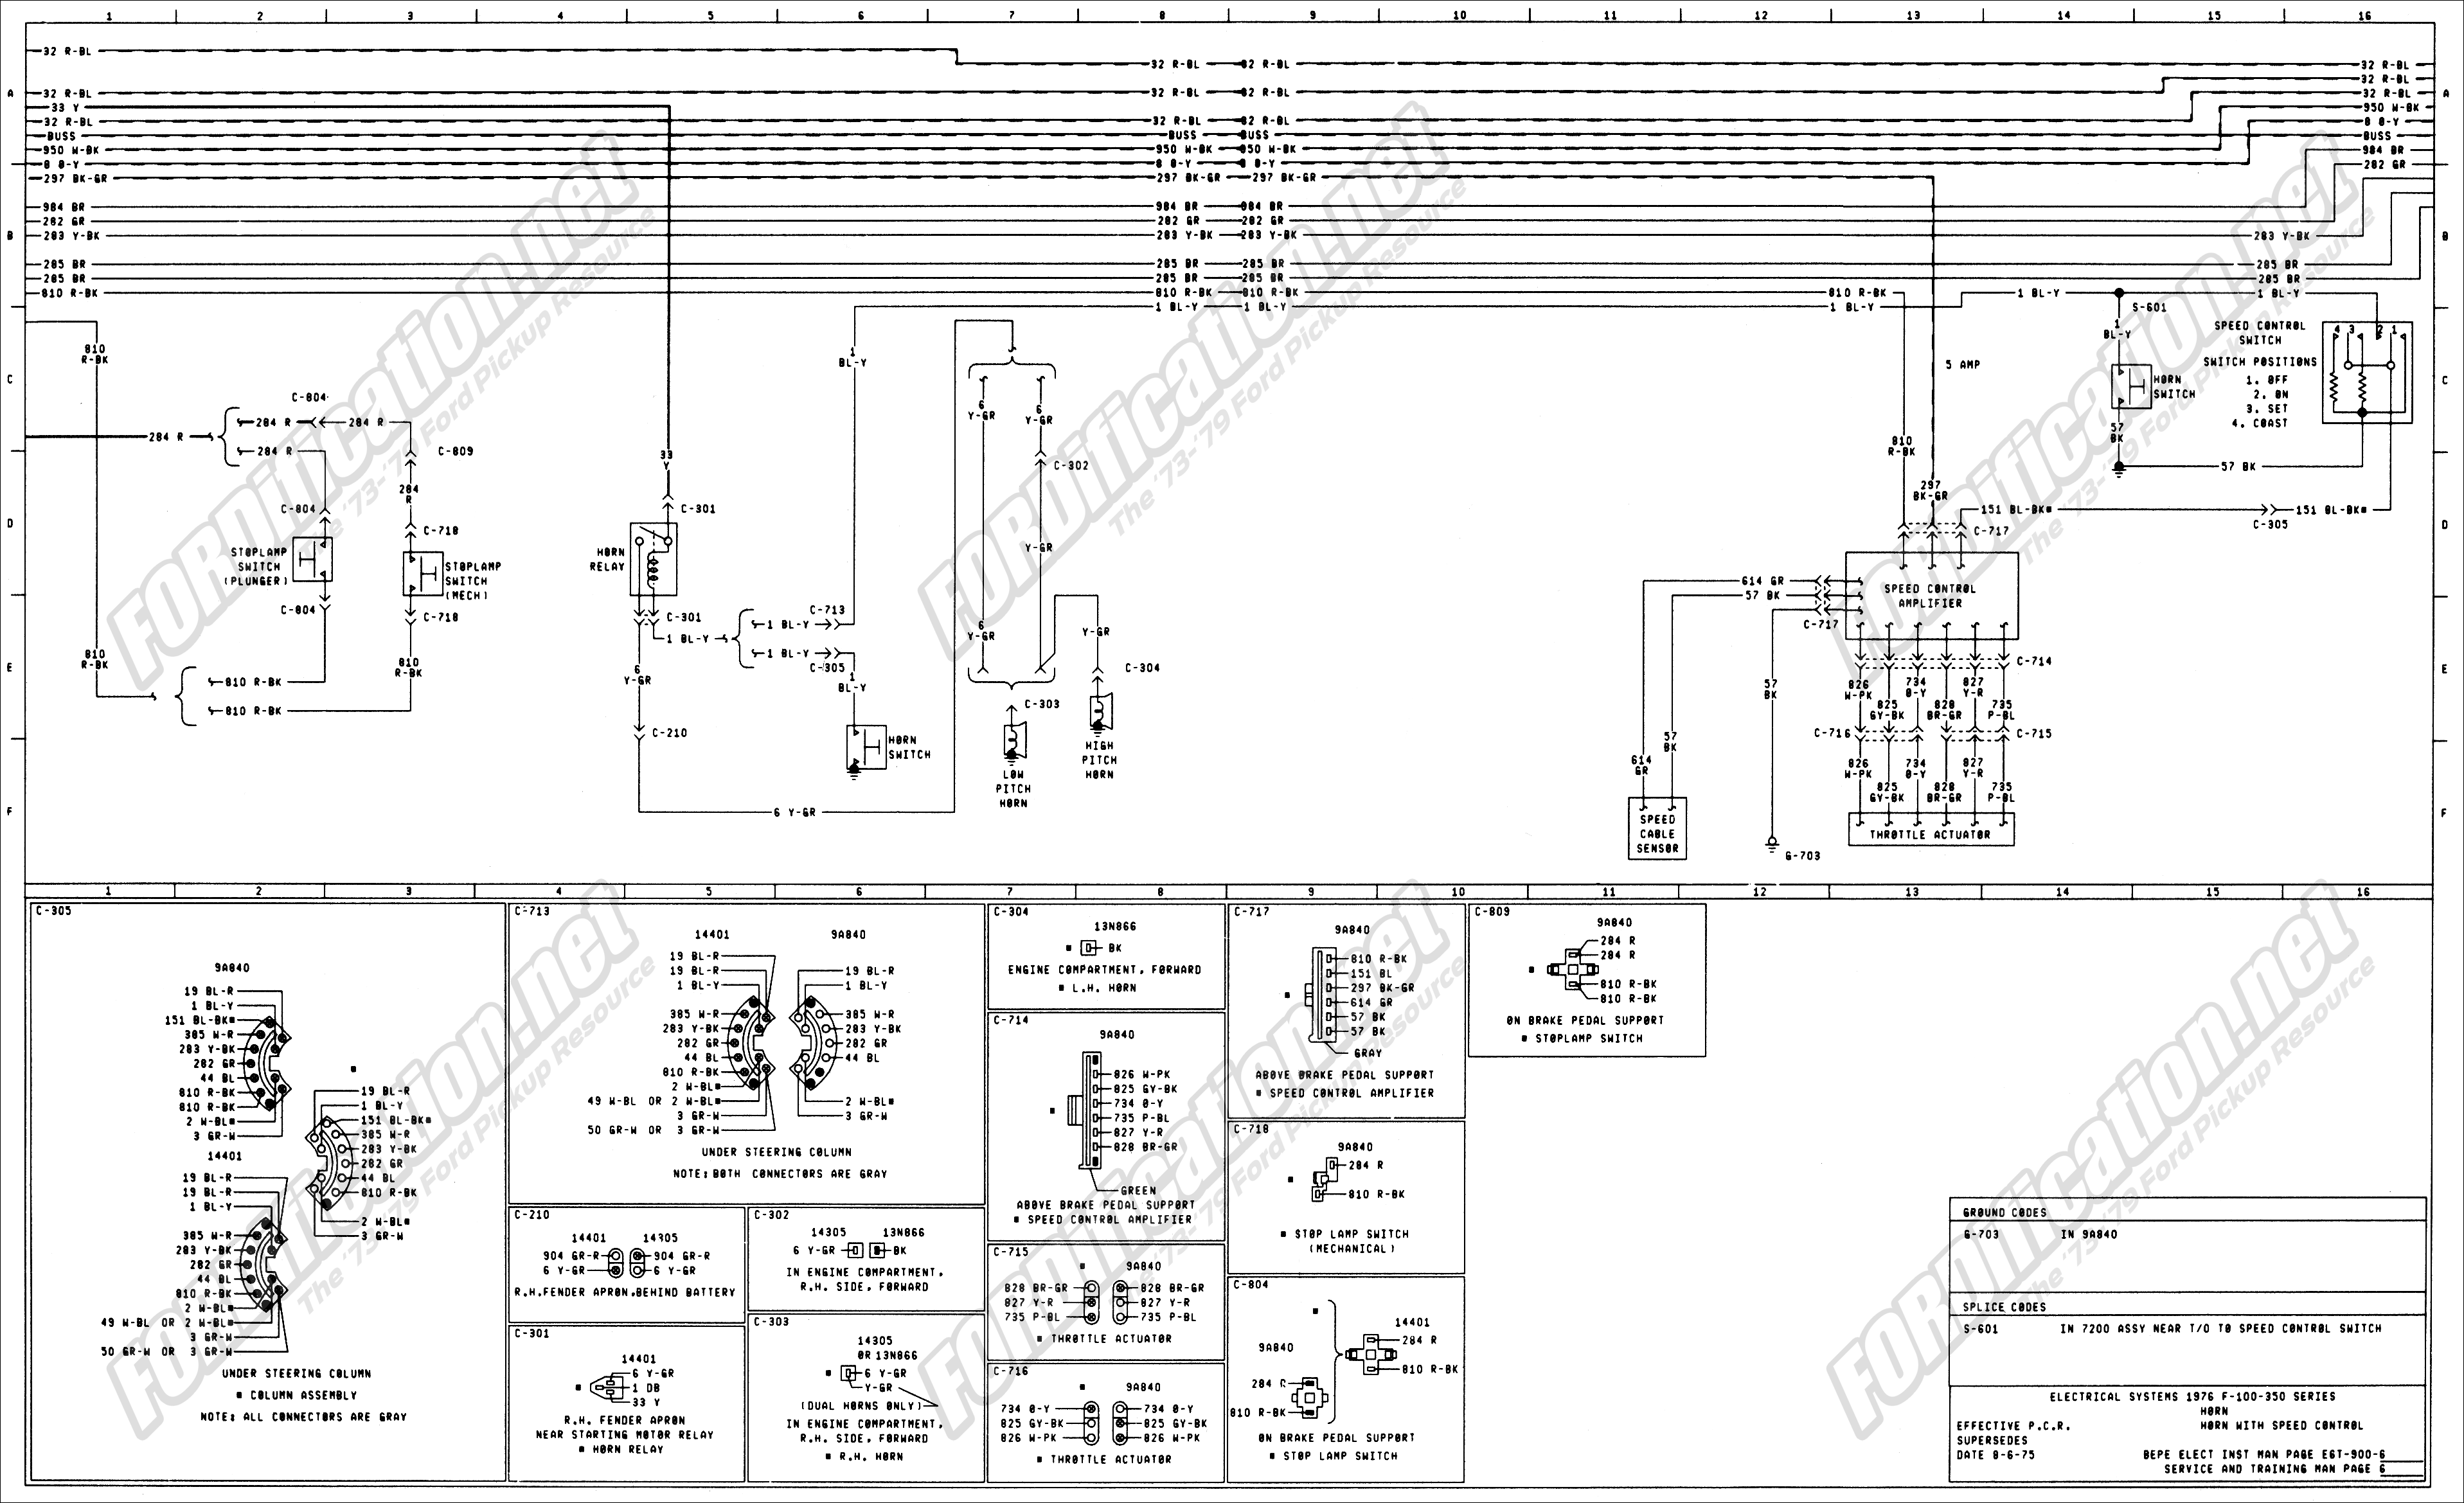 Chevy Truck Wiring Diagram on 90 chevy truck wiper motor, 90 chevy truck cover, 90 chevy camaro wiring diagram, 90 ford bronco wiring diagram, 90 chevy truck headlight, 90 chevy truck seats, 90 chevy truck chassis, 90 chevy truck brochure, chevy truck engine diagram, 90 chevy c1500 wiring diagram,